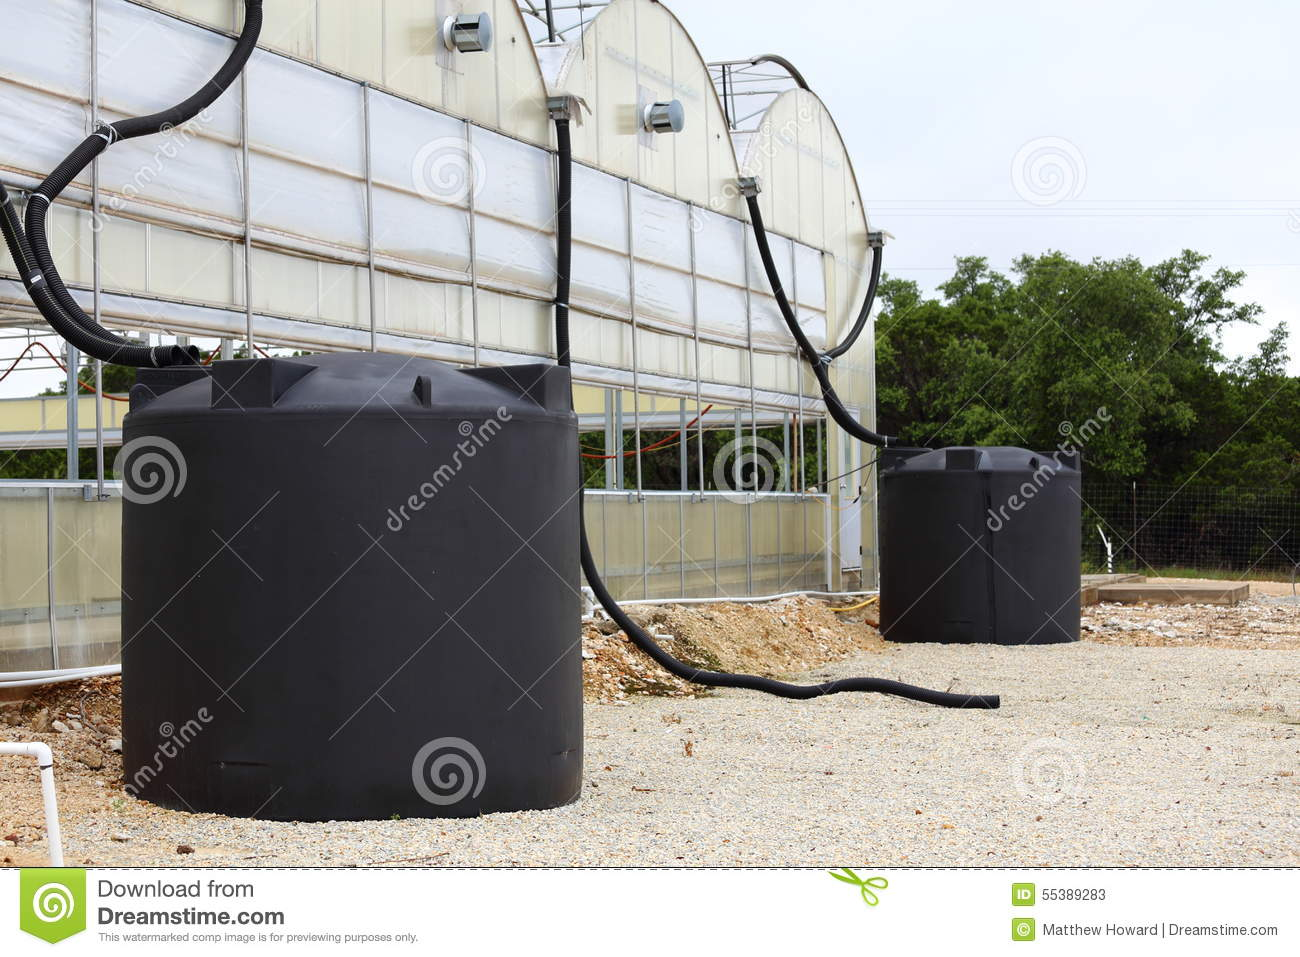 Rainwater Collection System Stock Image - Image of reservoir